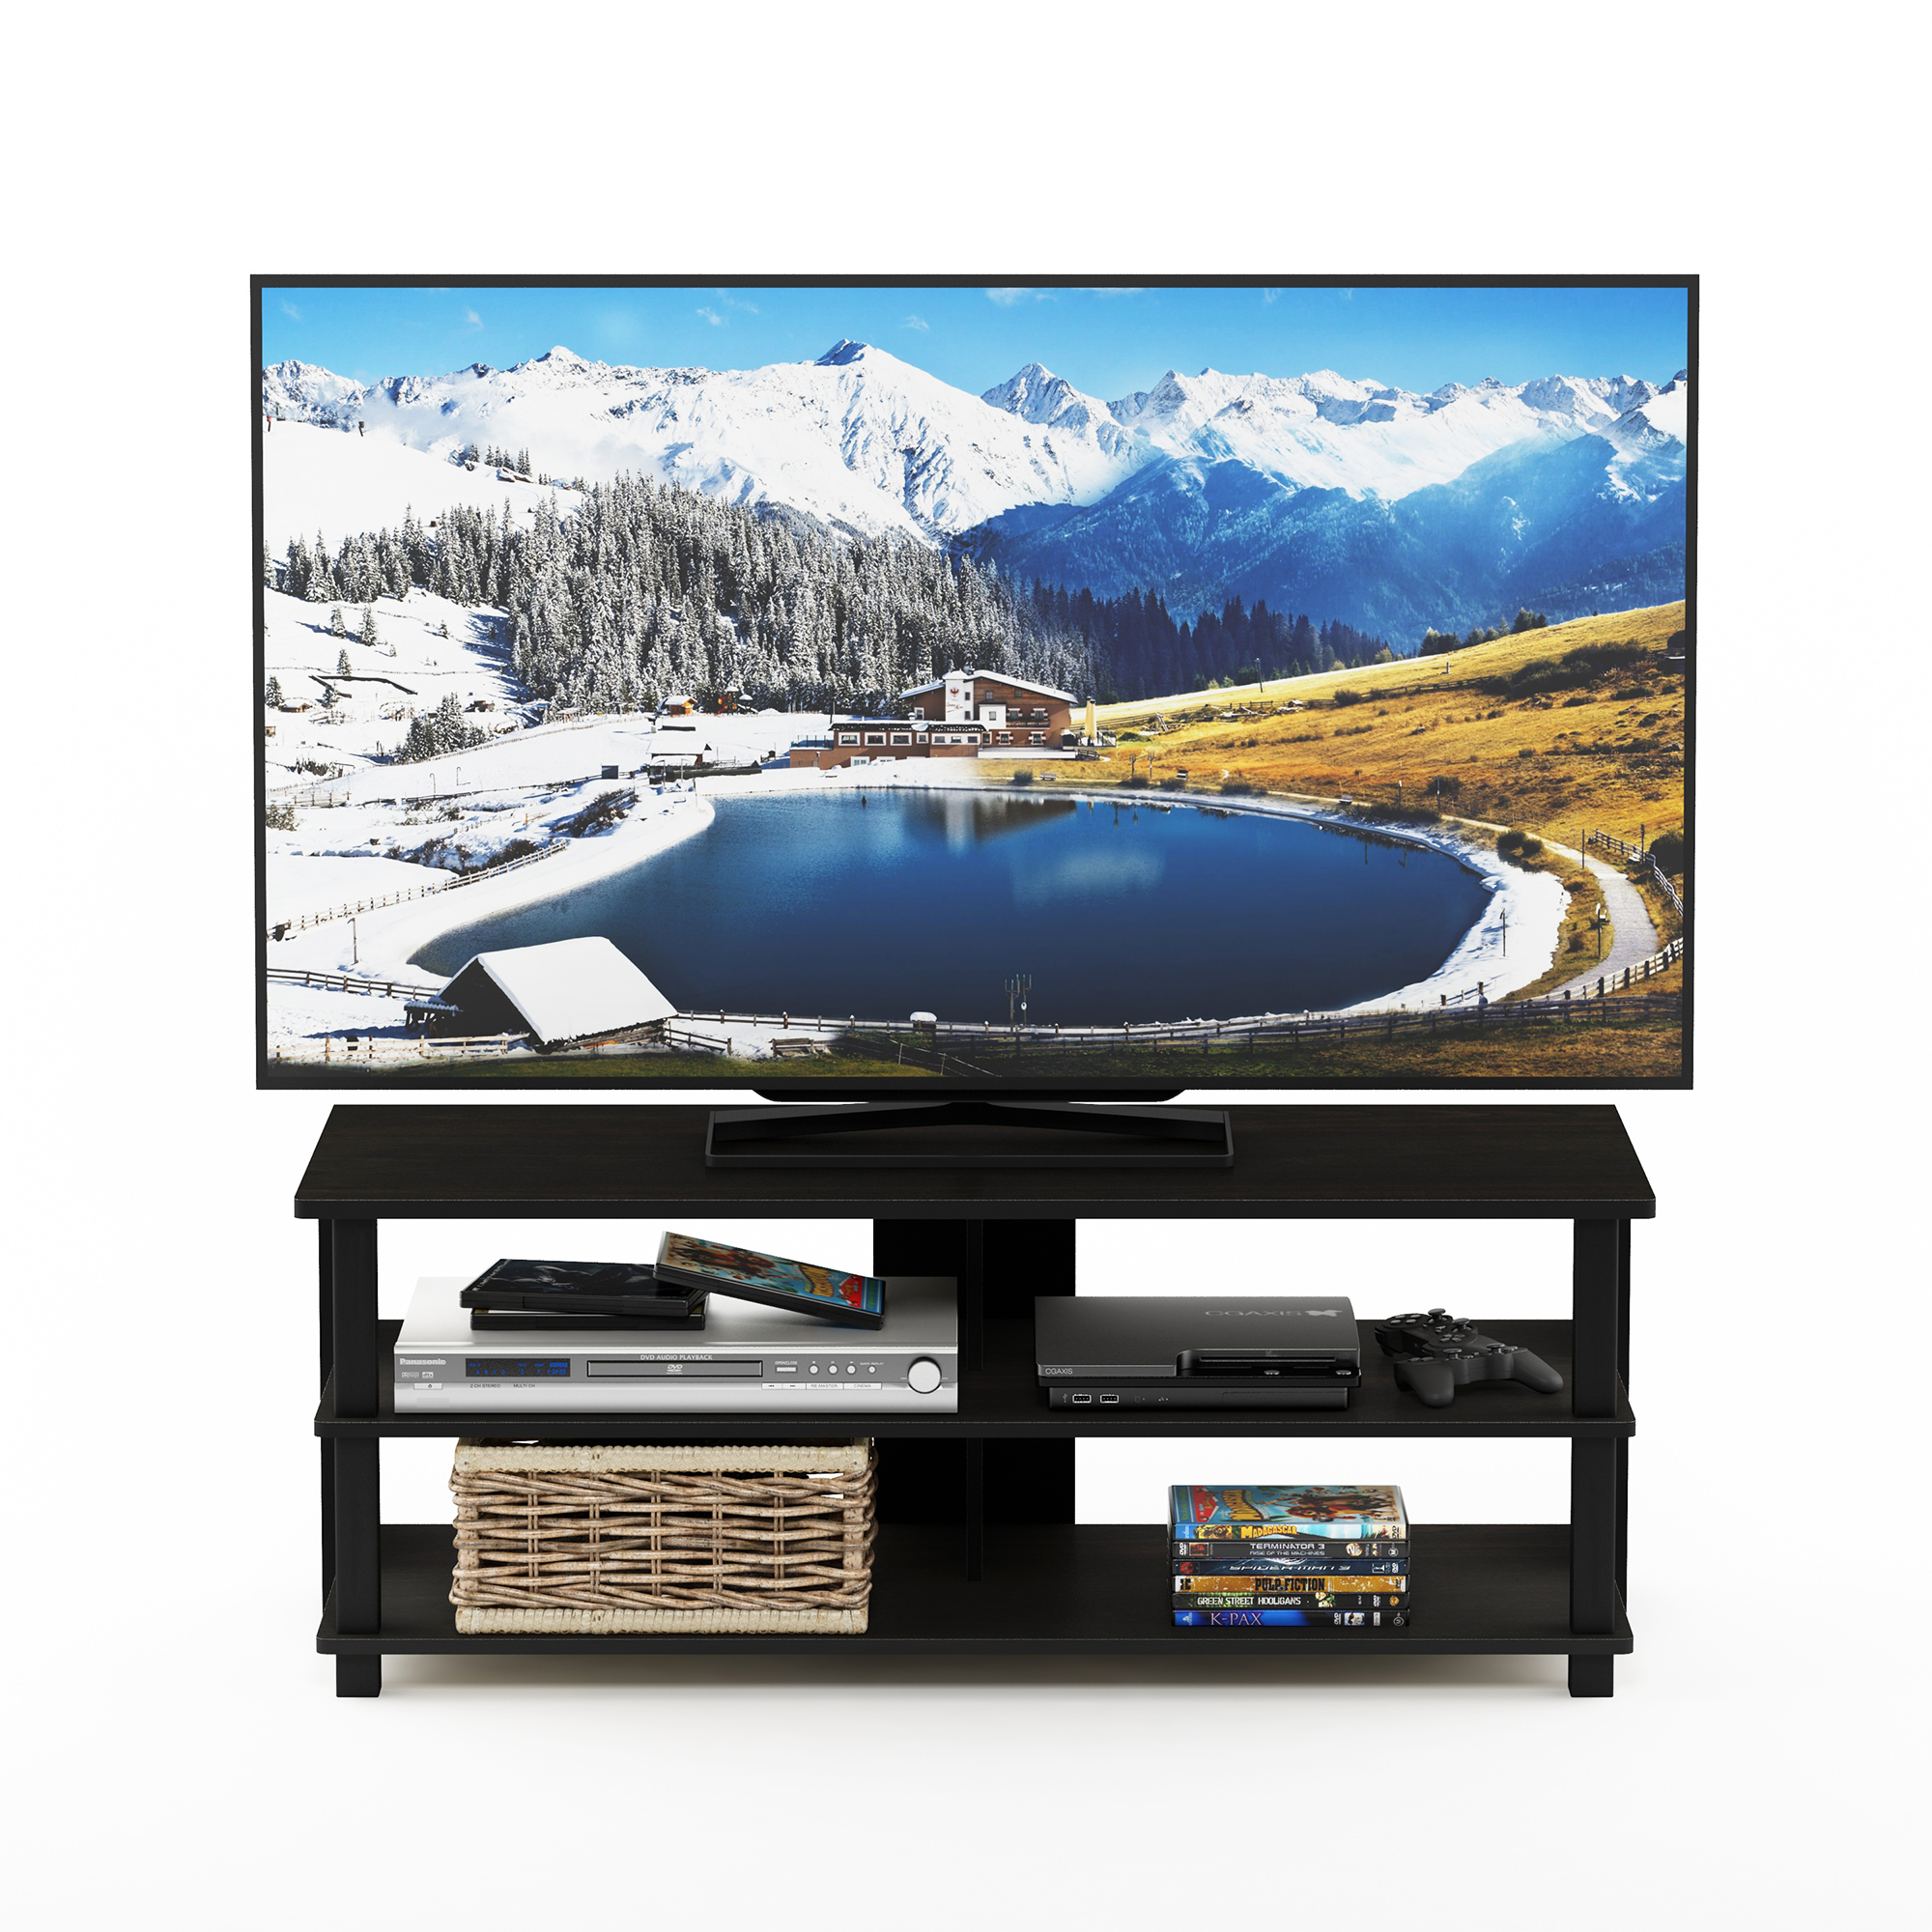 Furinno Sully 3-Tier TV Stand for TV up to 50, Espresso/Black, 17077EX/BK